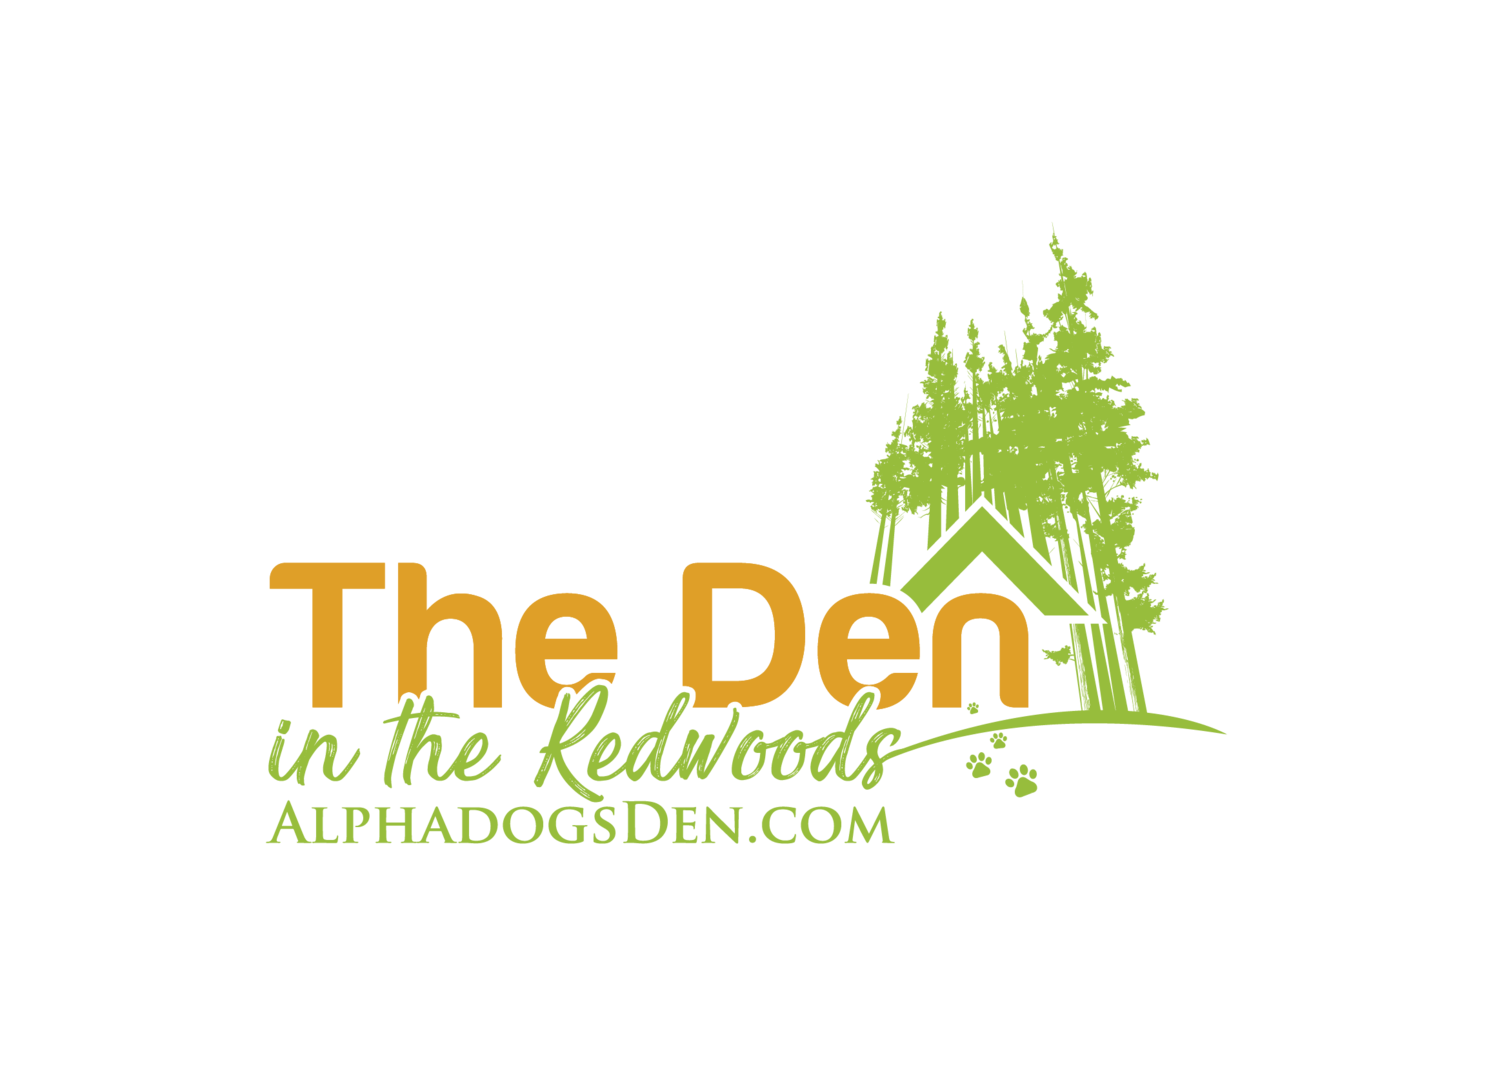 The Den in the Redwoods